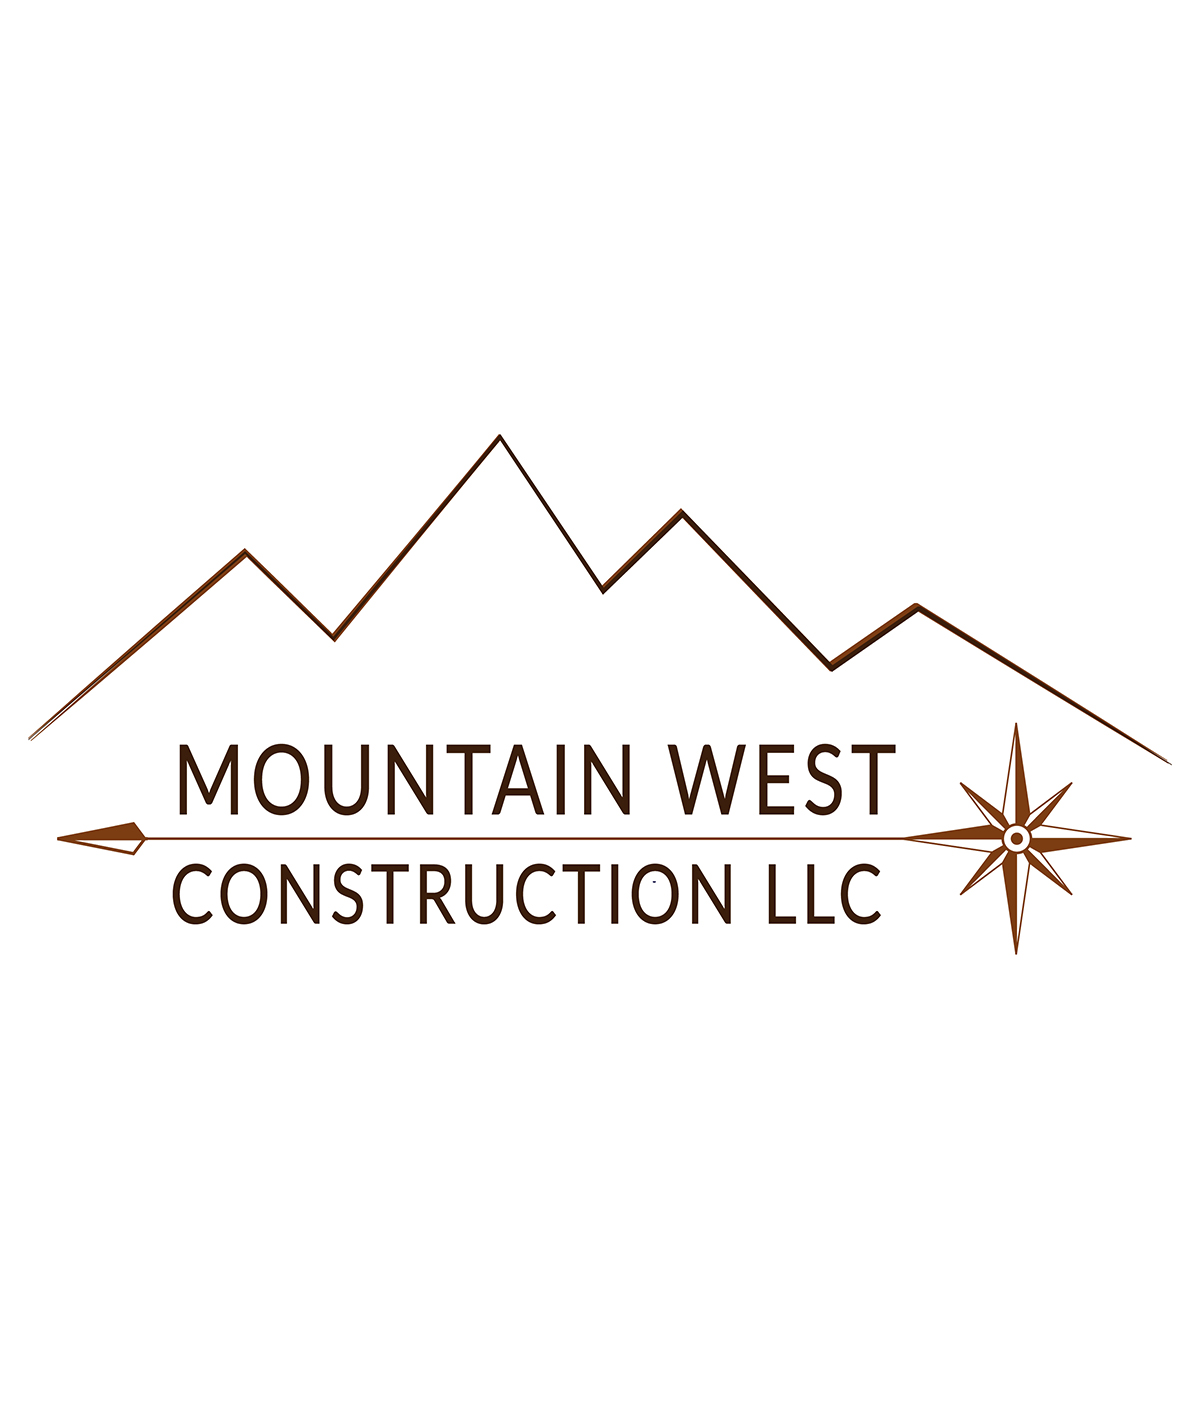 Mountain West Construction LLC Portrait.jpg